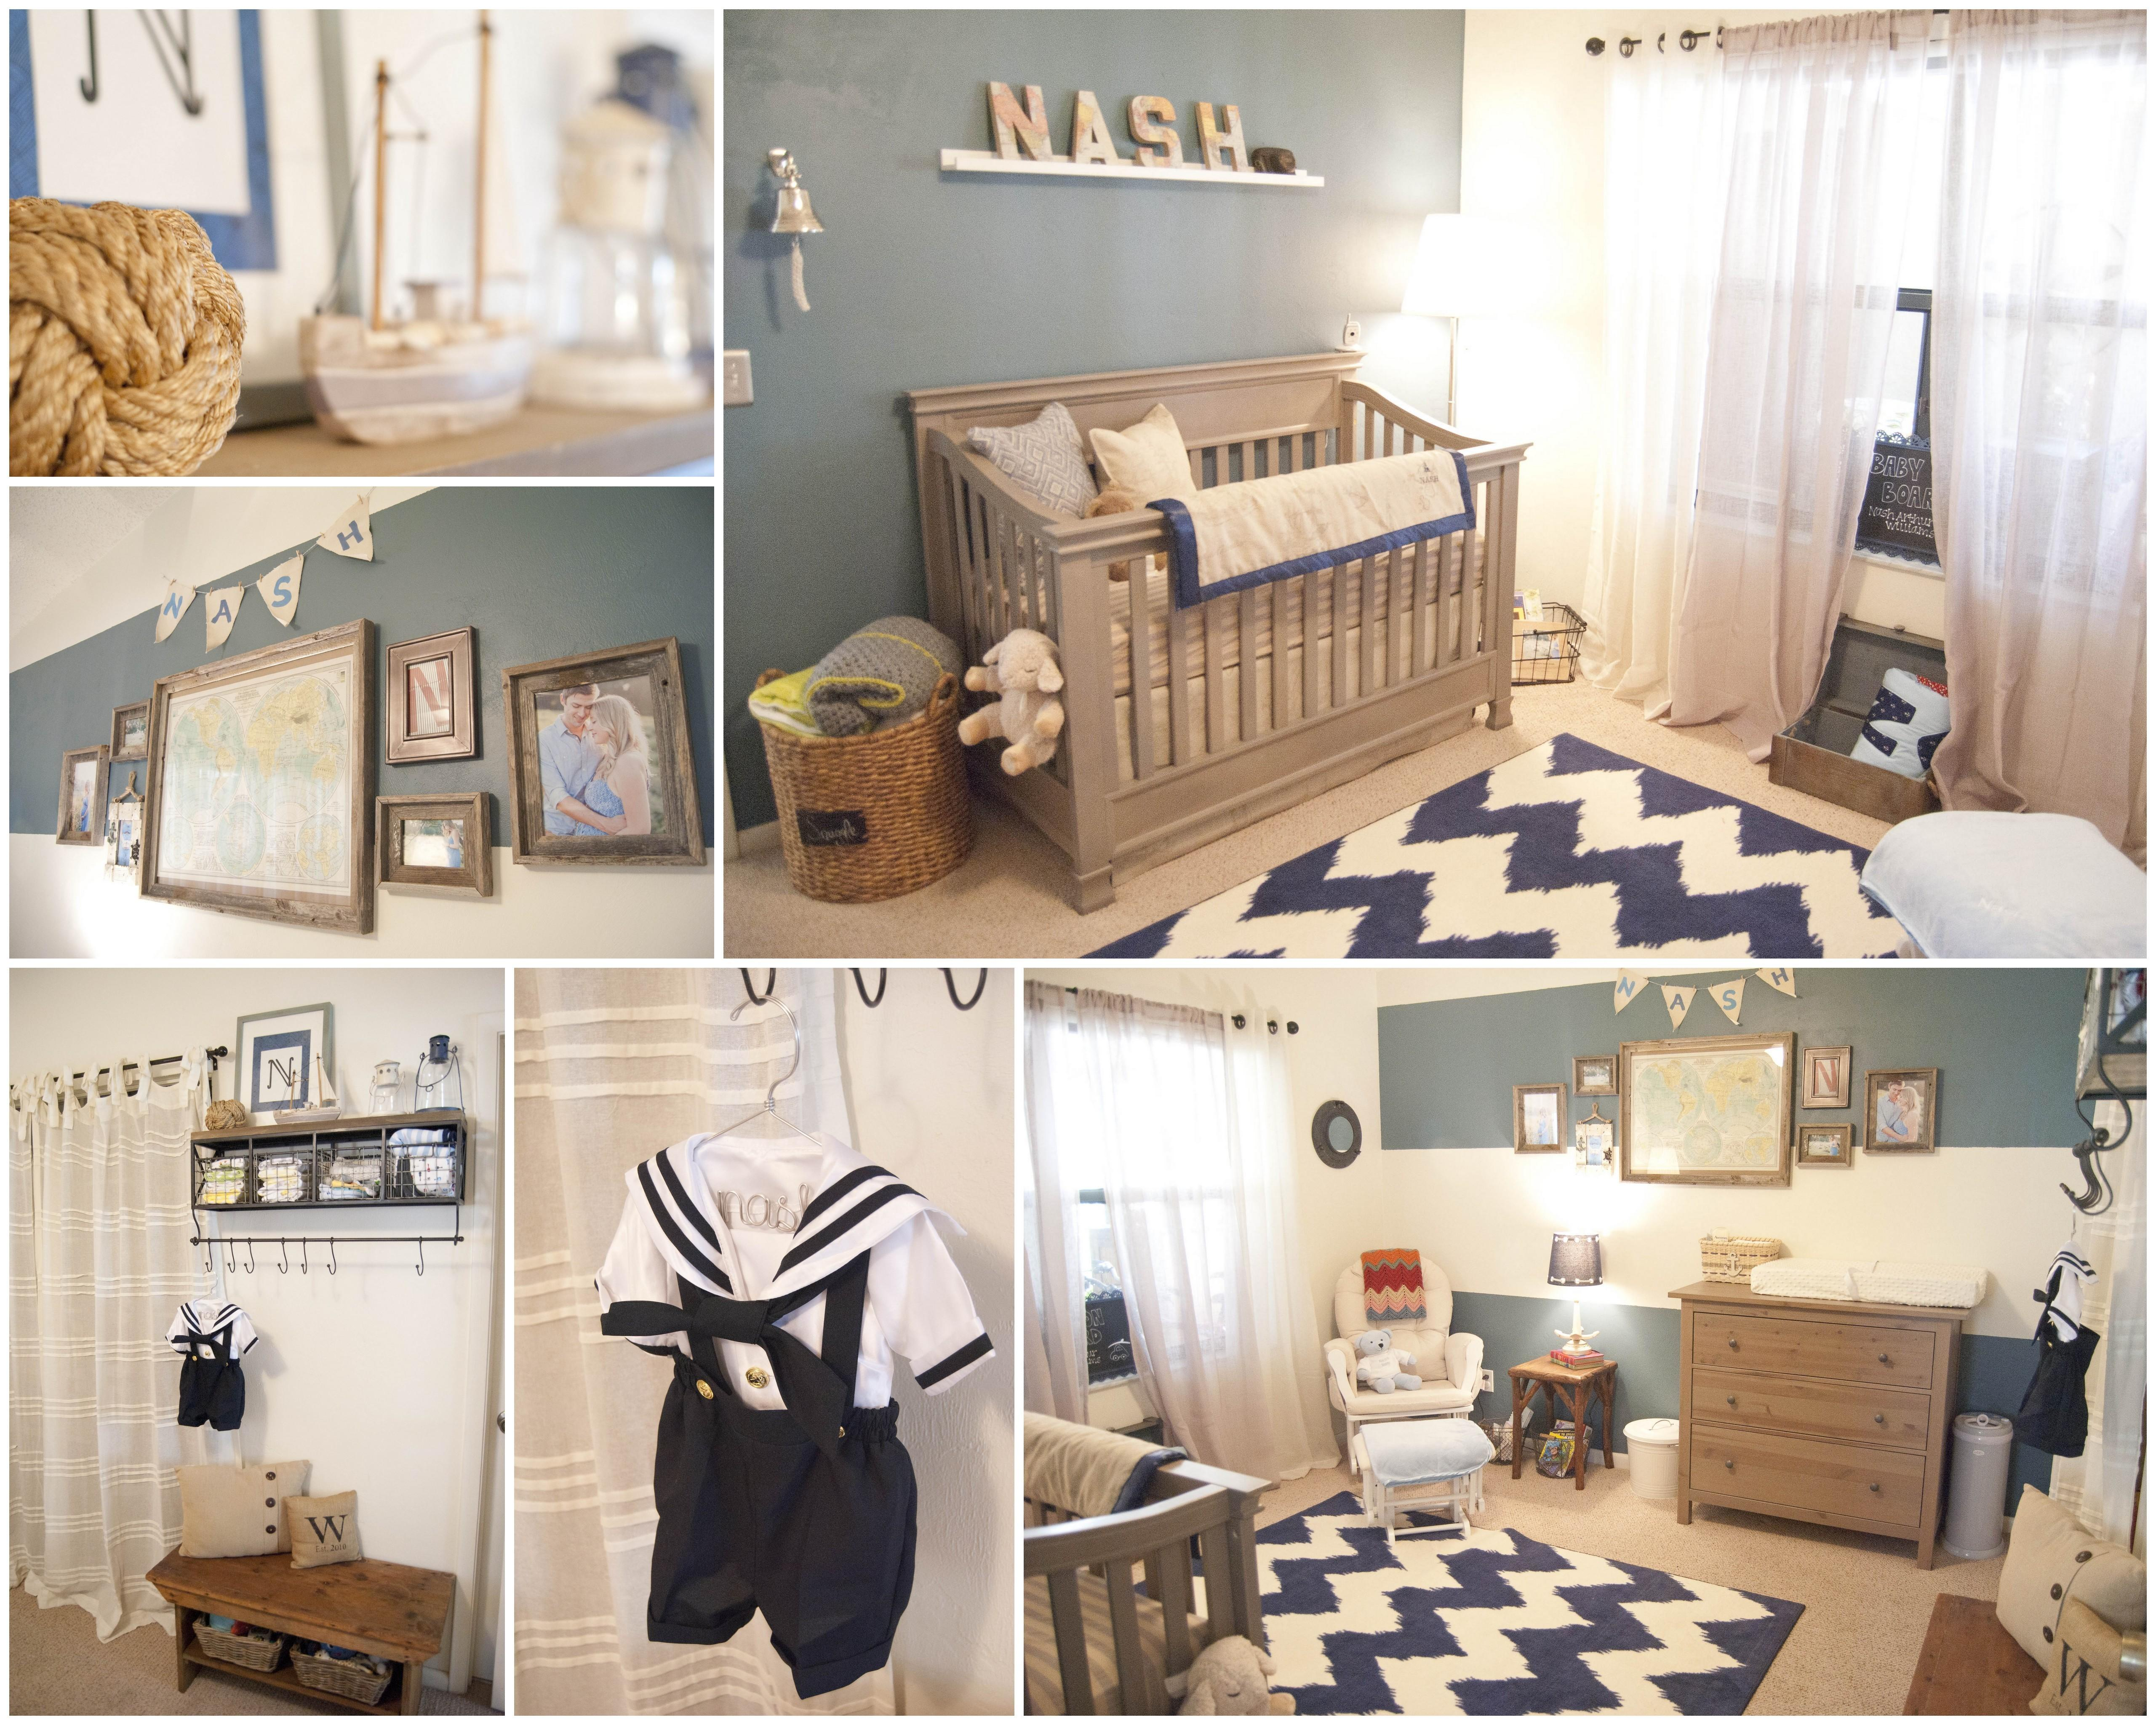 Baby Nash Vintage Nautical Nursery Project